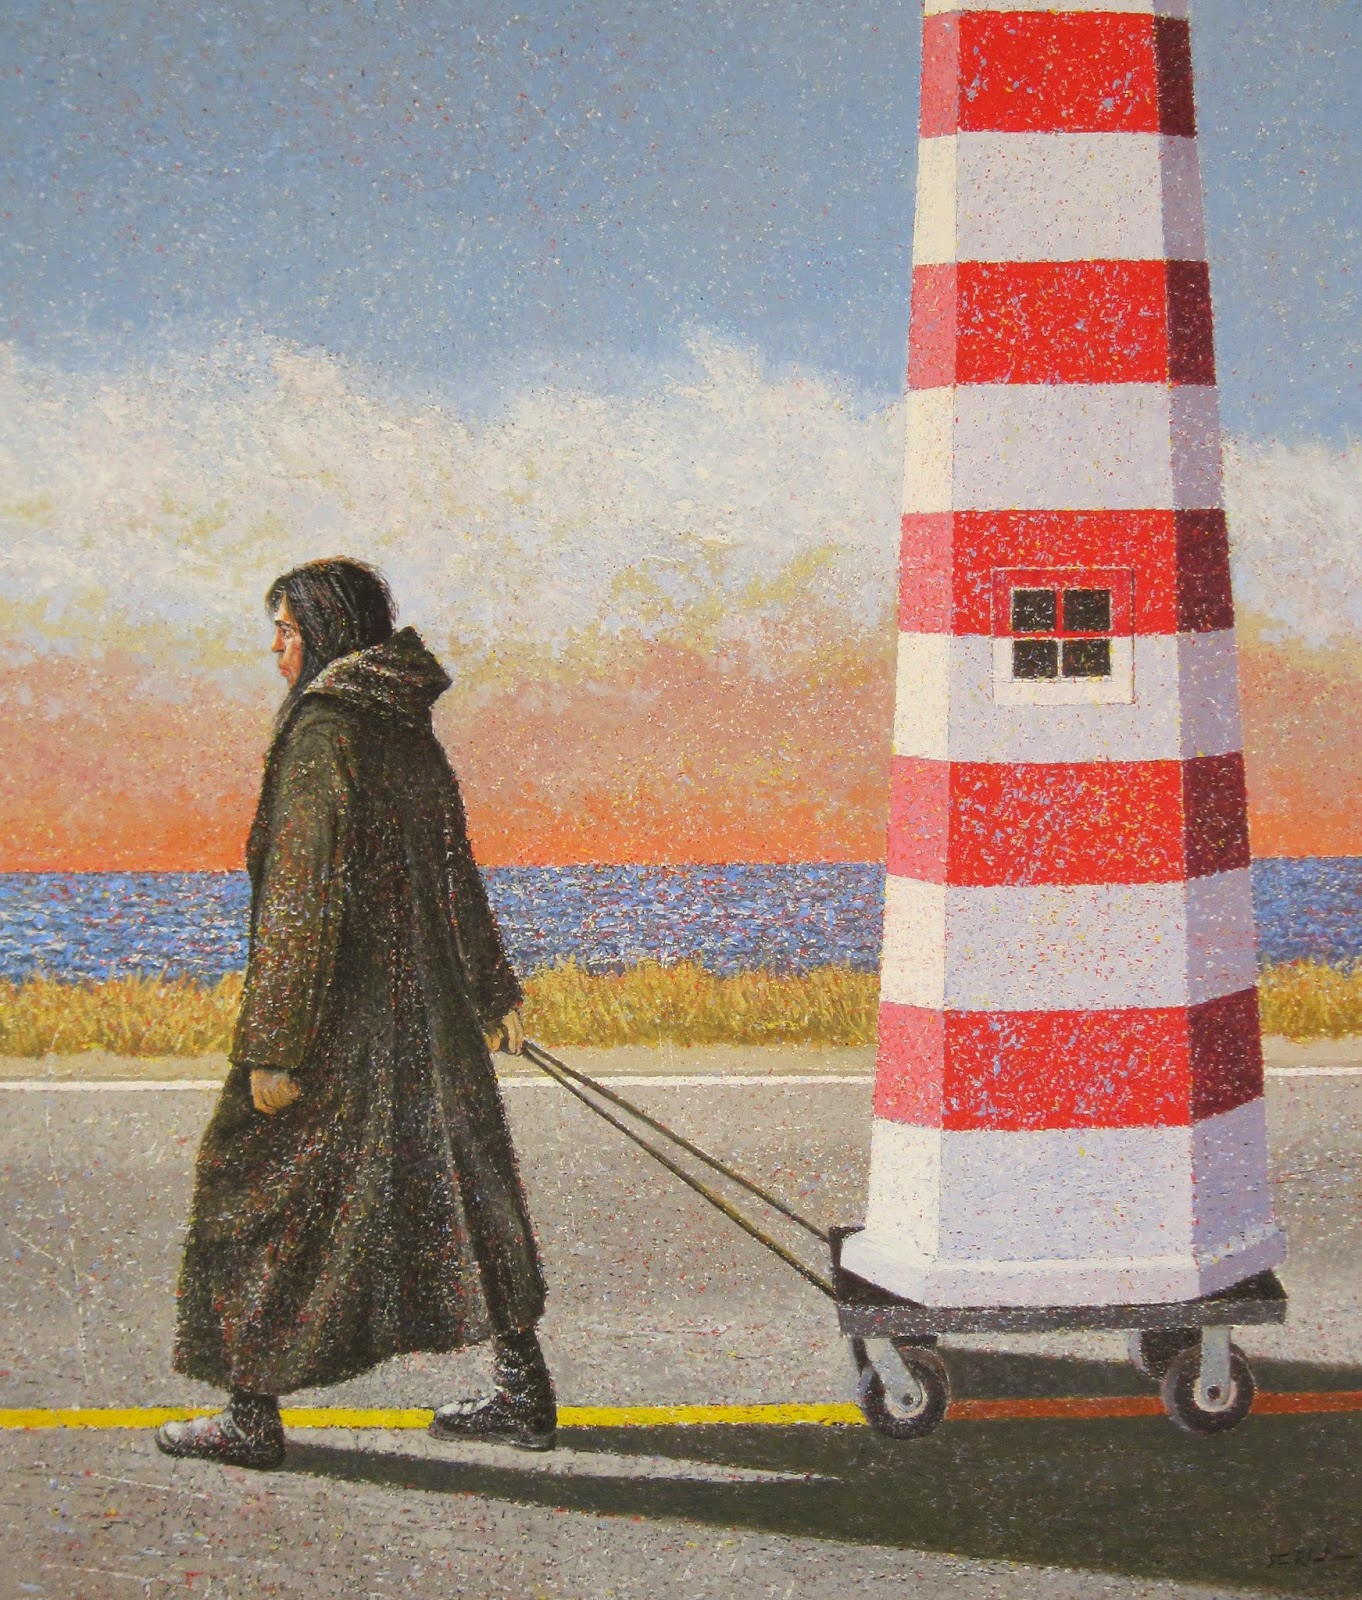 s-rhude-judy-takes-her-lighthouse-for-a-walk